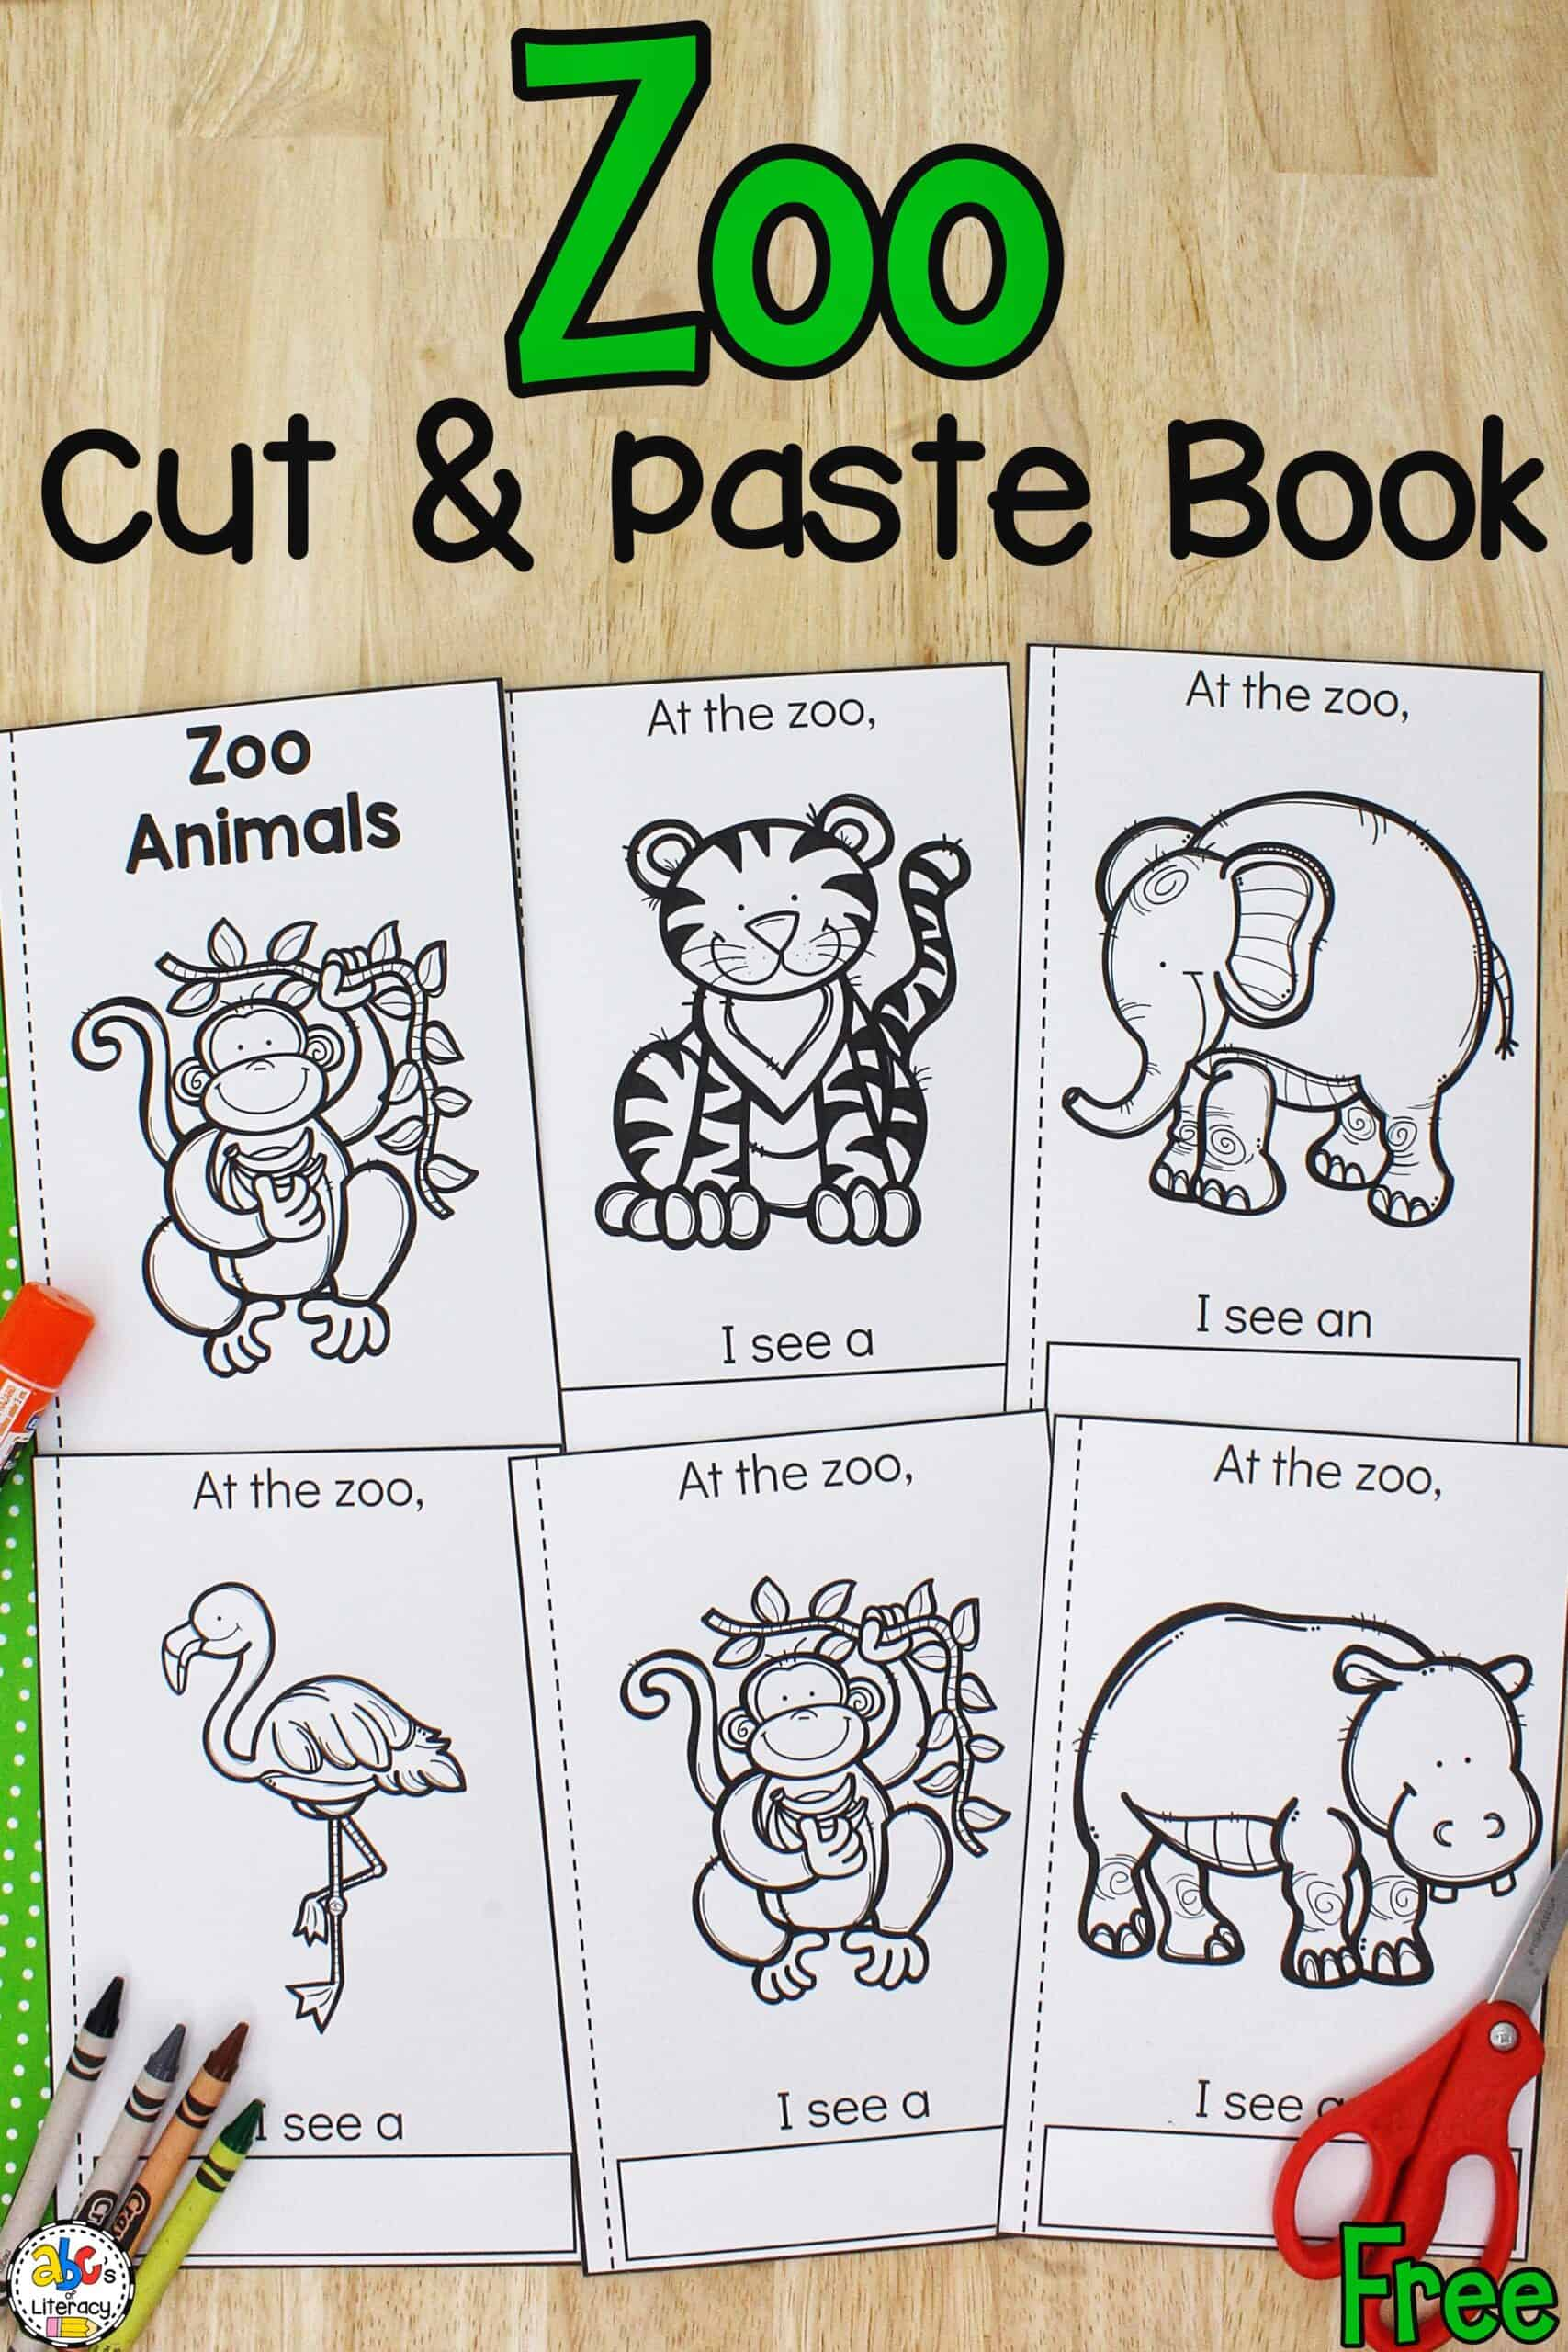 cut and paste zoo animals book